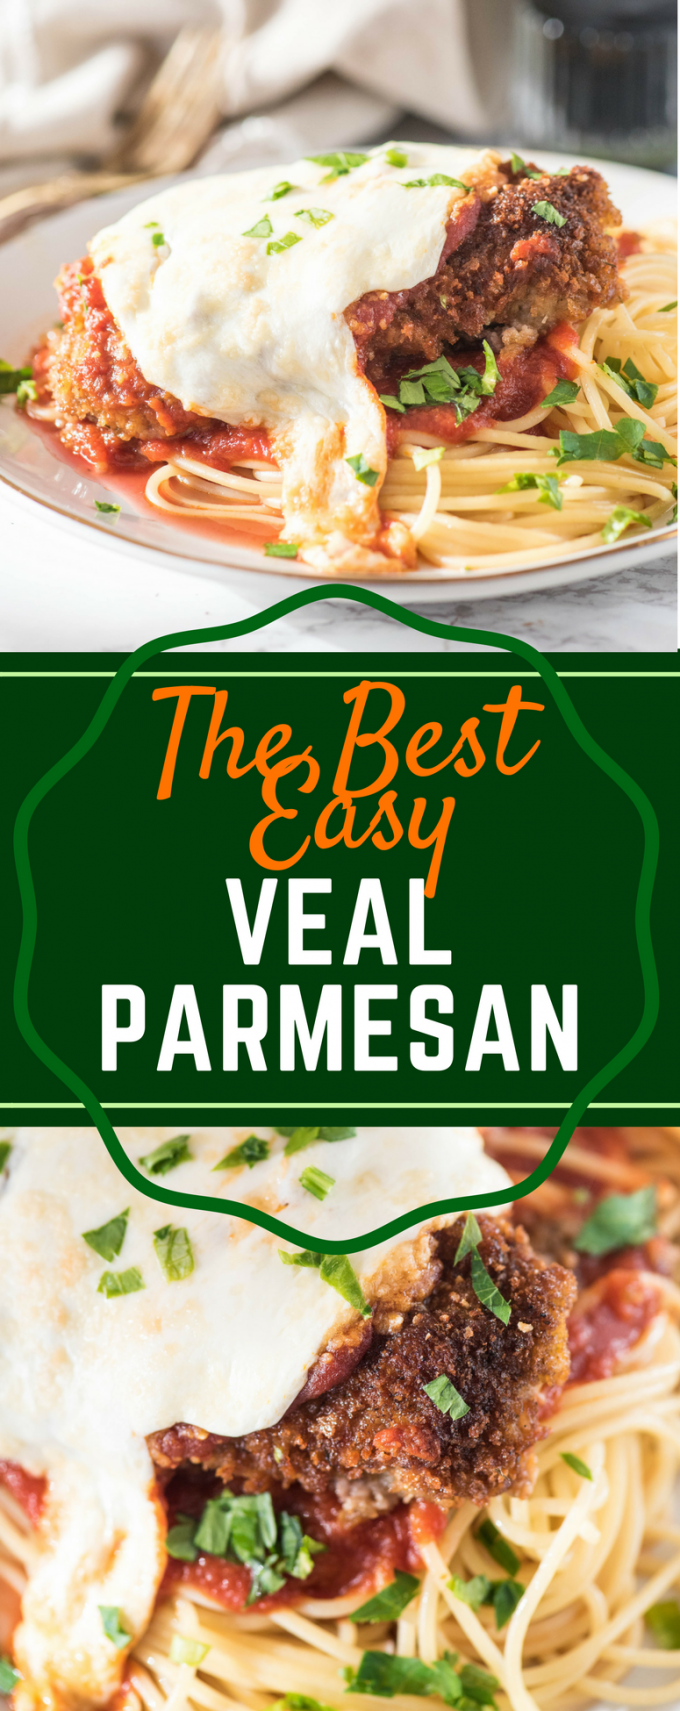 This is the BEST easy Veal Parmesan recipe! Pan fried and then baked to perfection, this recipe could not be more simple. Parmigiana is a fast weeknight meal that is authentic Italian! #vealparmesan #vealparmigiana #authenticitalianrecipes #easyweeknightdinners #gogogogourmet via @gogogogourmet